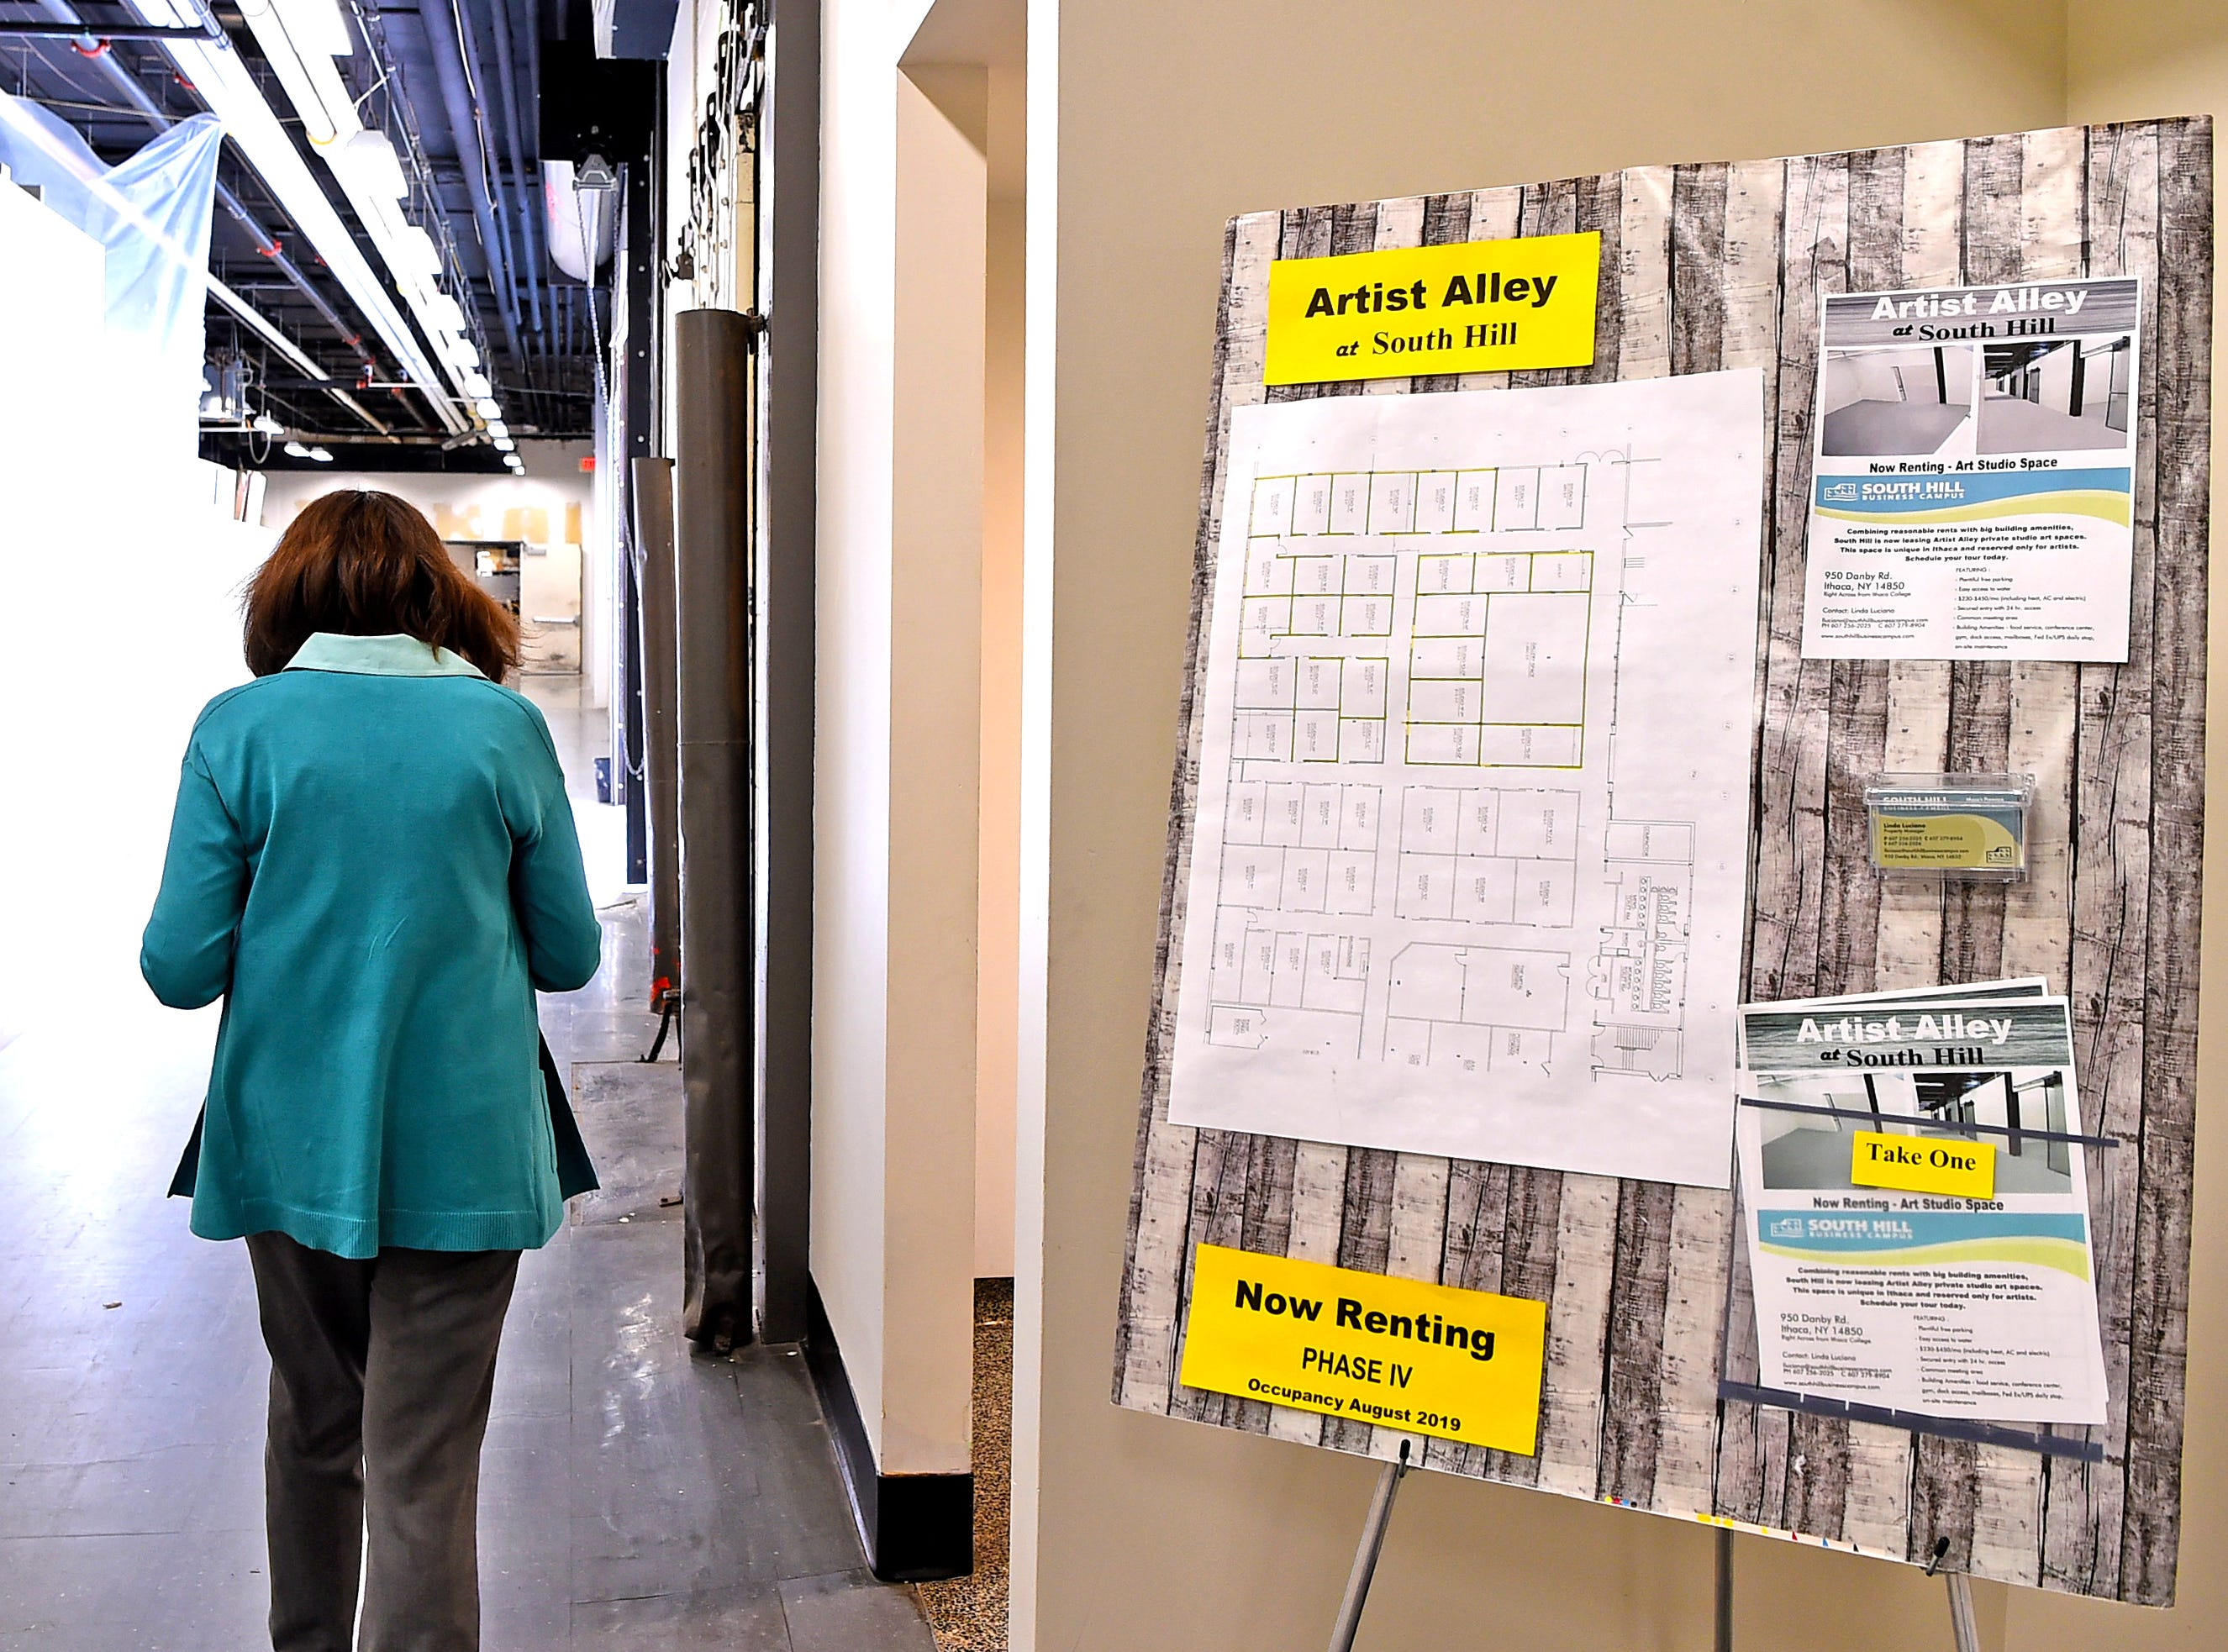 Linda Luciano, property manager of South Hill Business Complex on Danby Road in Ithaca, walks down the hallway leading to Artist Alley on the building's ground floor. Luciano has worked closely with several artists to learn what artists need in a workspace.